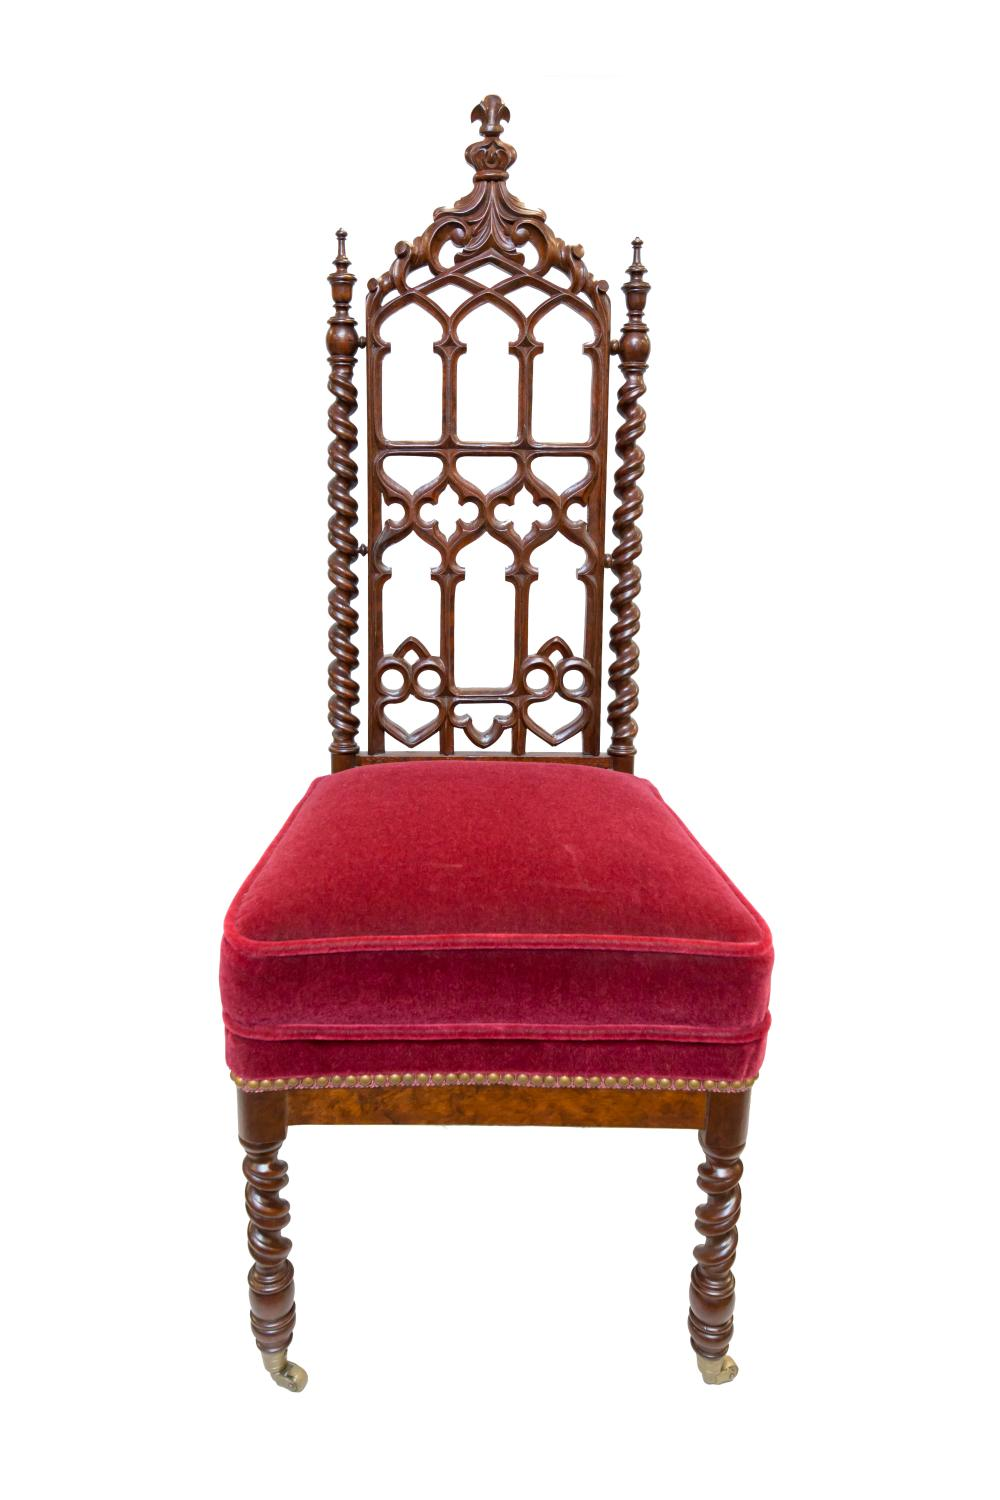 H20023-L164838242.jpg  sc 1 st  Invaluable & Over 100 Year Old Pair of Antique Gothic Chairs